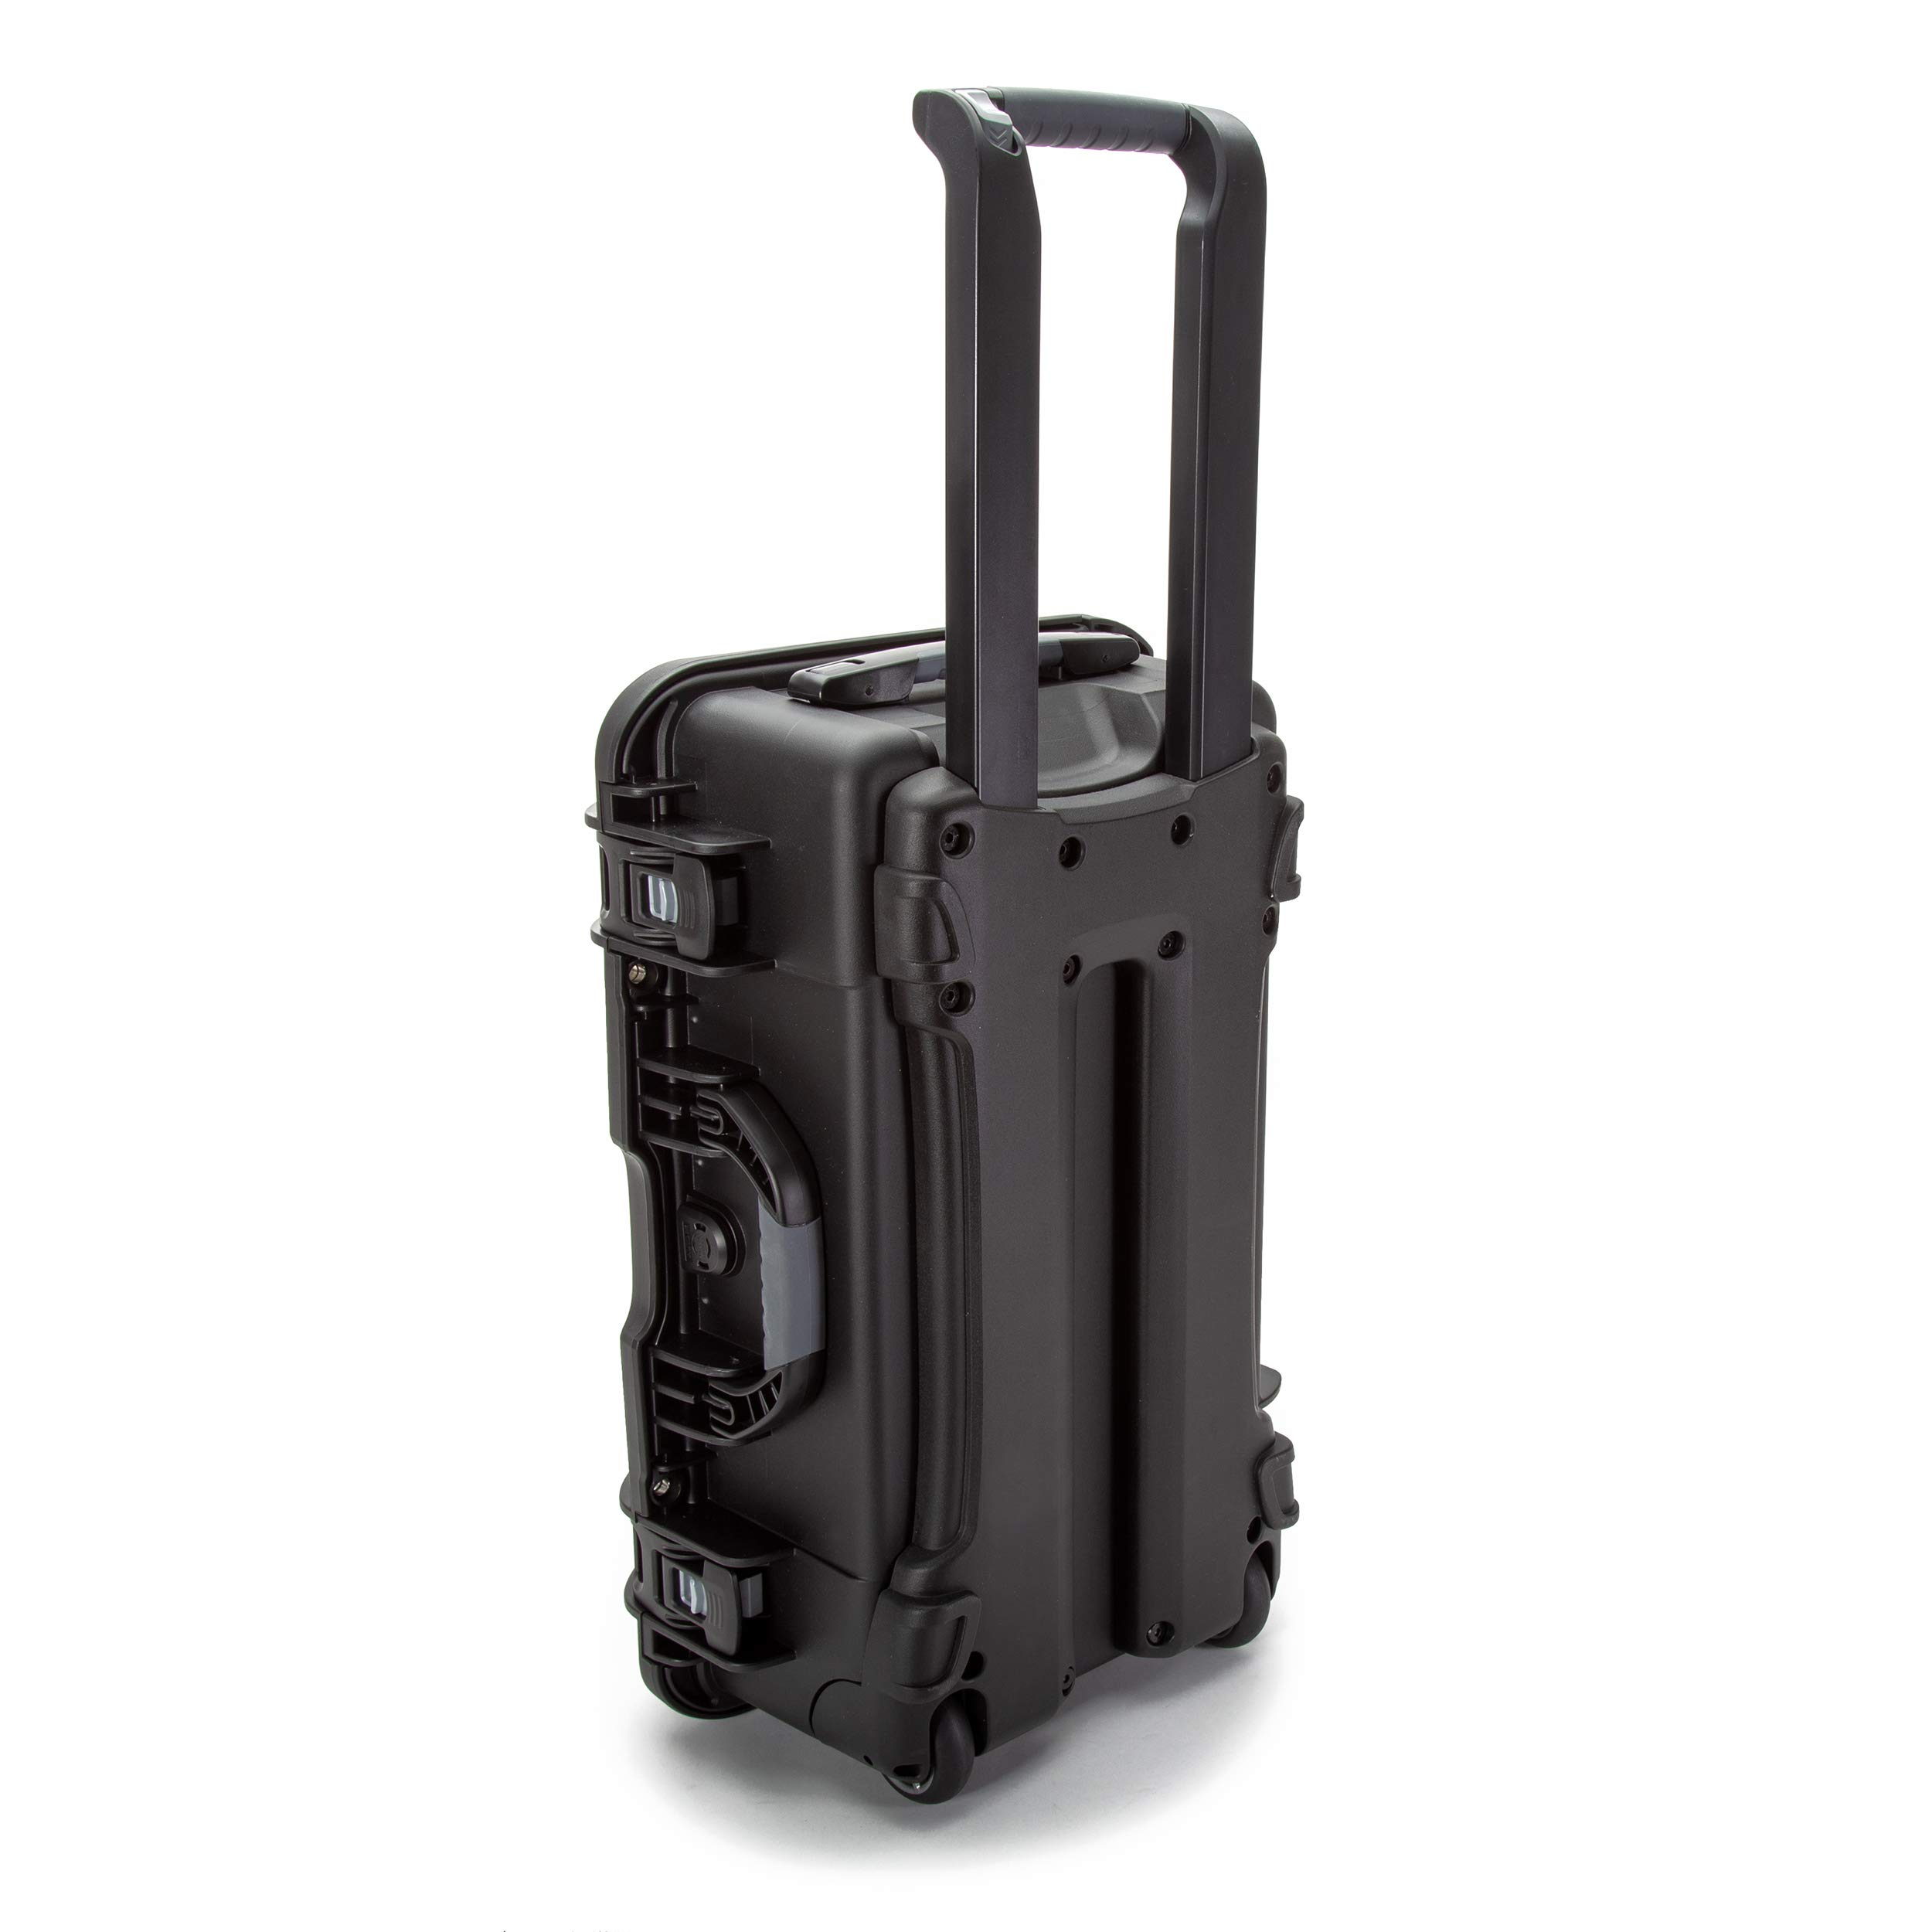 Nanuk 935 Waterproof Carry-On Hard Case with Wheels and Foam Insert - Black by Nanuk (Image #3)